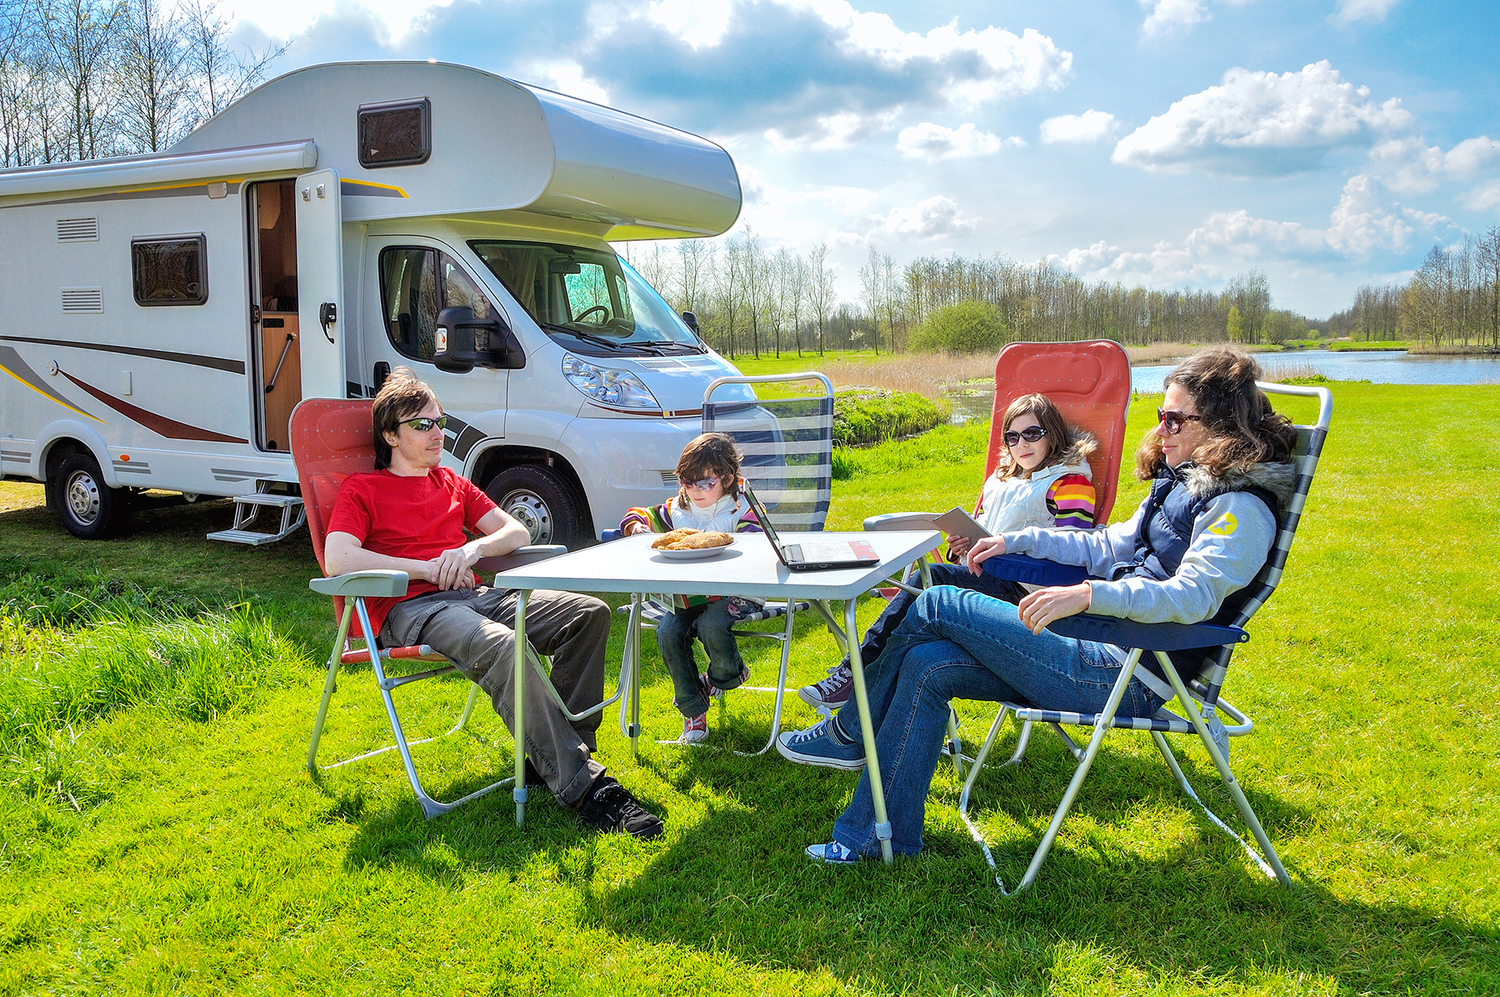 Perhaps No Other Country In The World Has As Many Parks And Campgrounds US That Are Thoroughly Ideal For Exploring After Parking Your RV